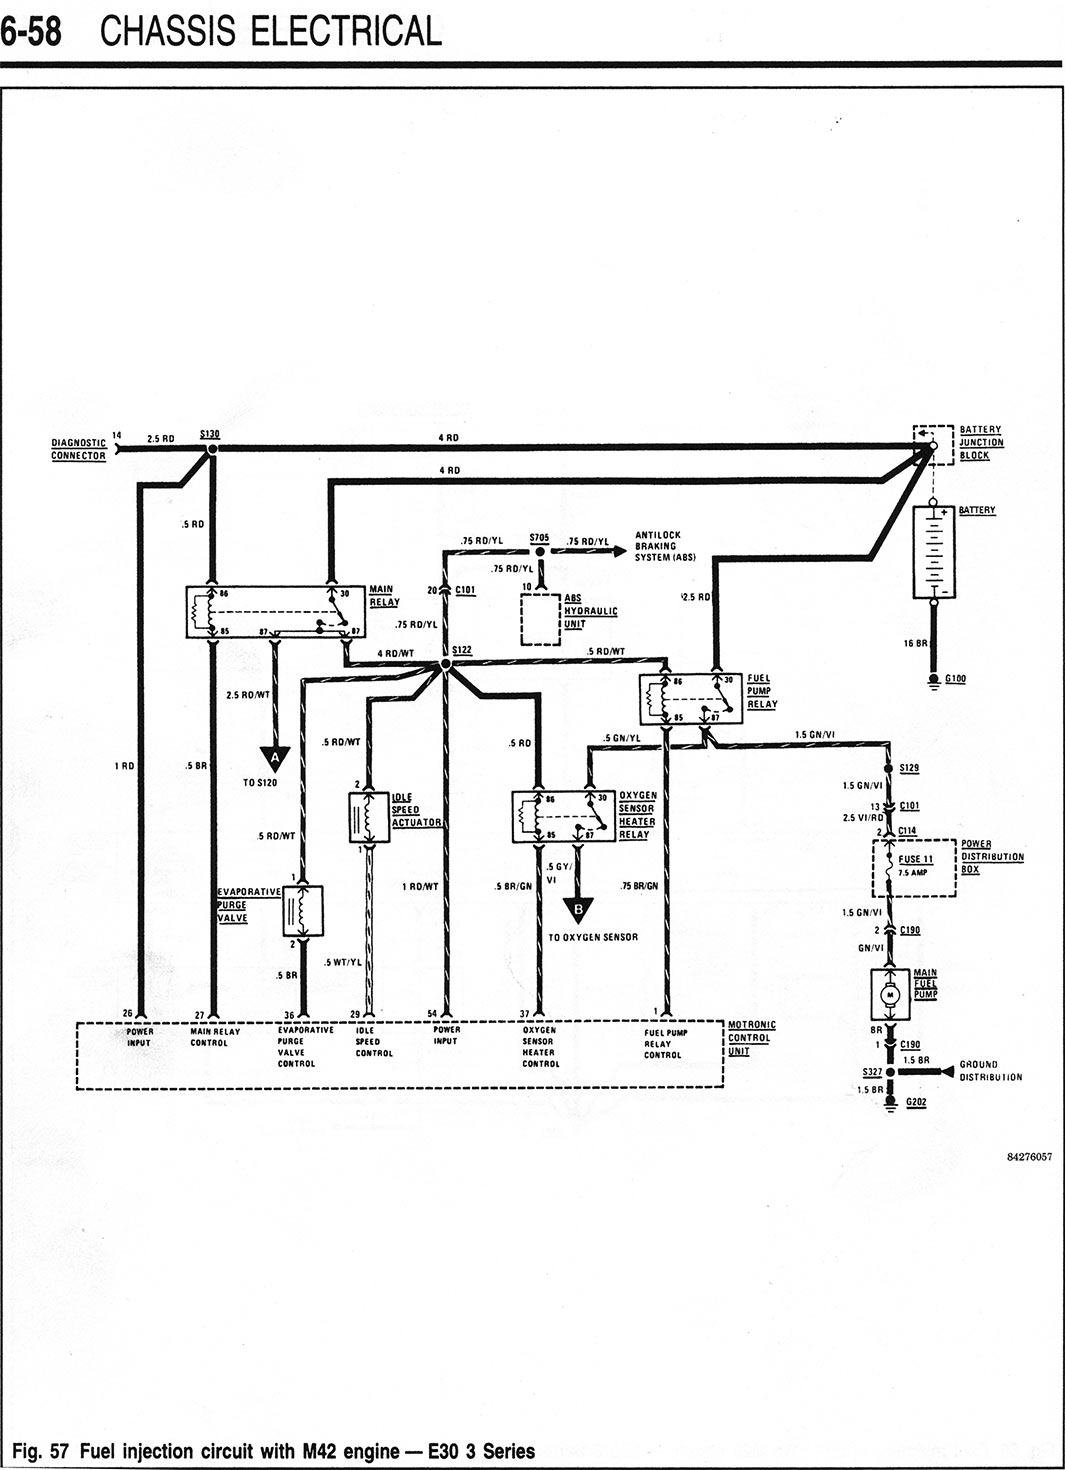 PG658 e30 wiring diagram e30 amplifier wiring diagram \u2022 wiring diagrams 2003 bmw e46 wiring diagram at gsmx.co